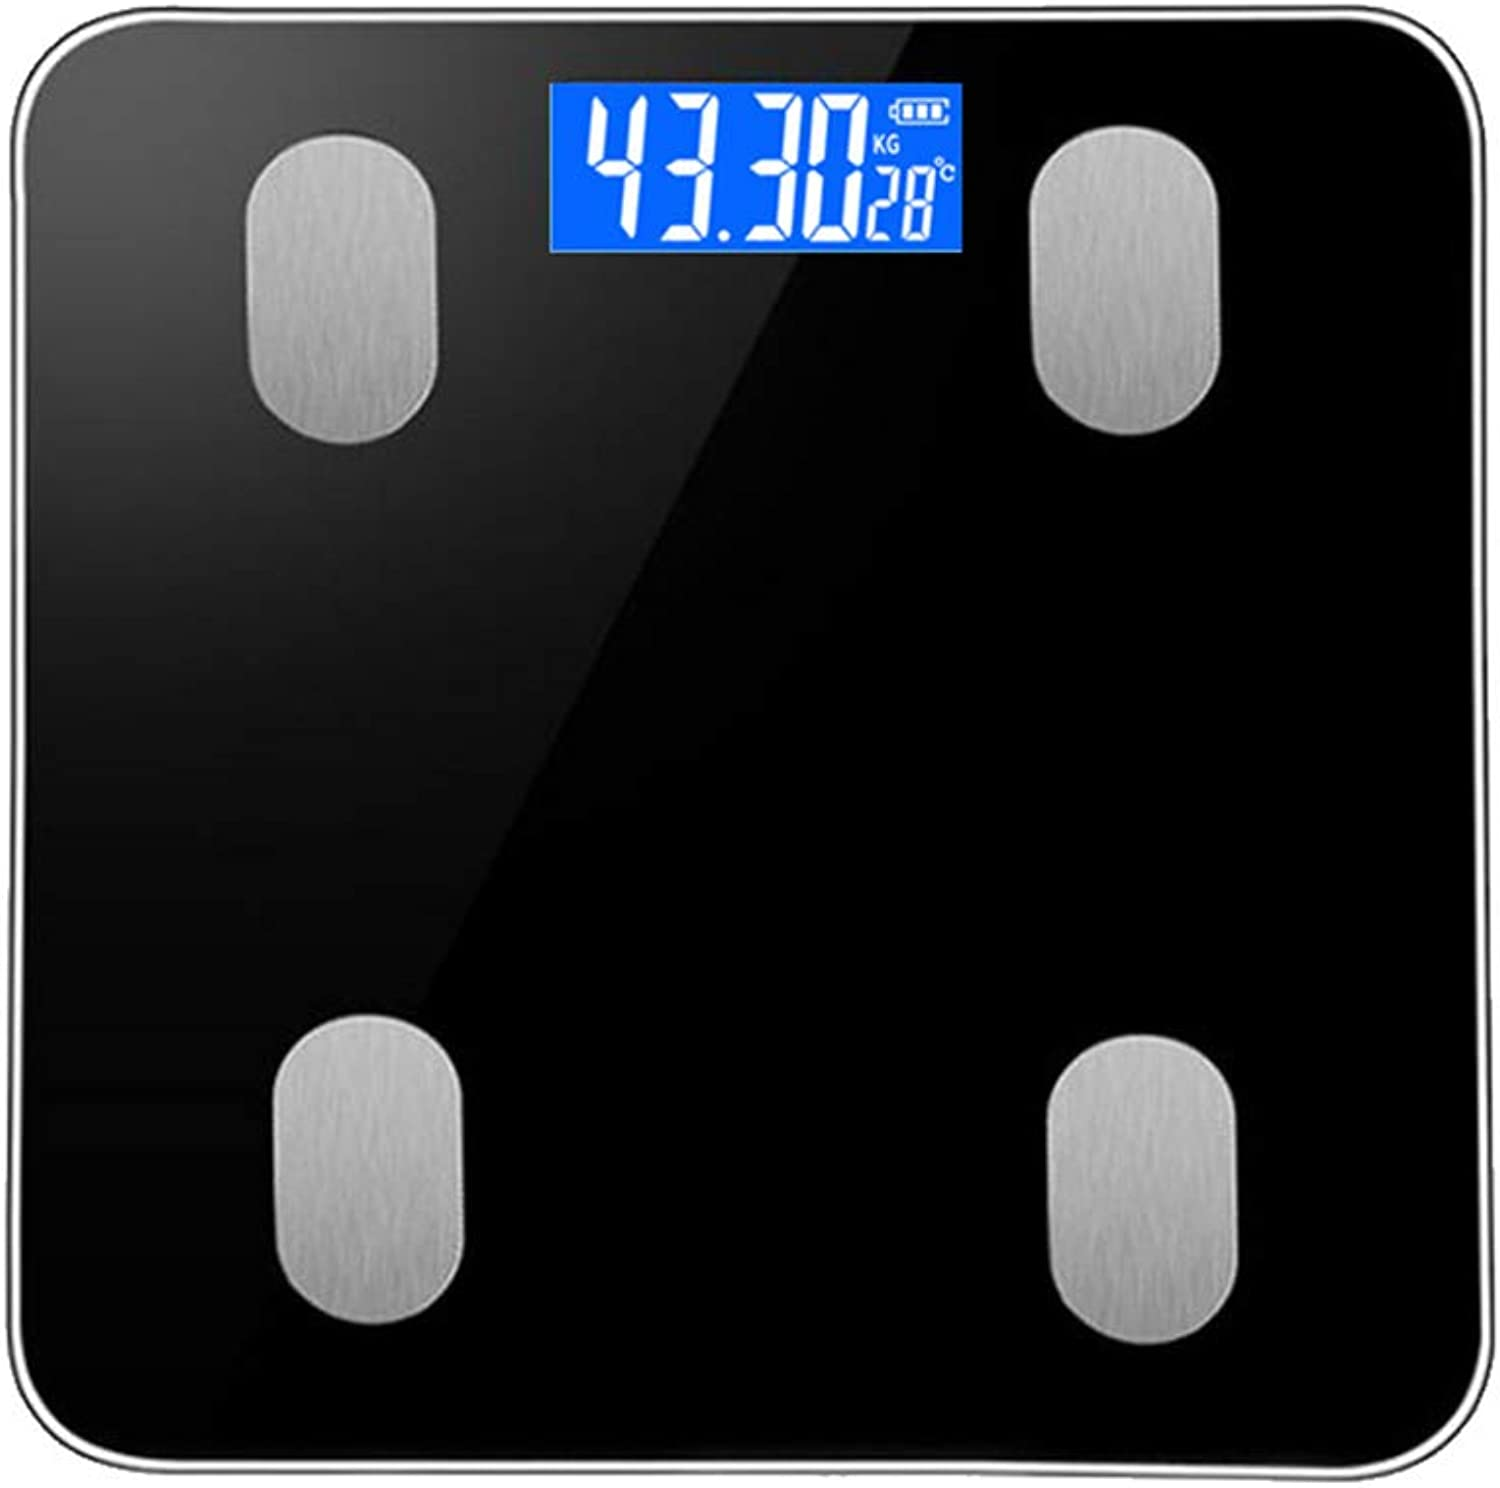 blueeetooth Digital Smart Scale, Body Fat Scale with Tempered Glass LED Display Use for Measures Body Fat Visceral Fat Muscle Mass Bone Mass